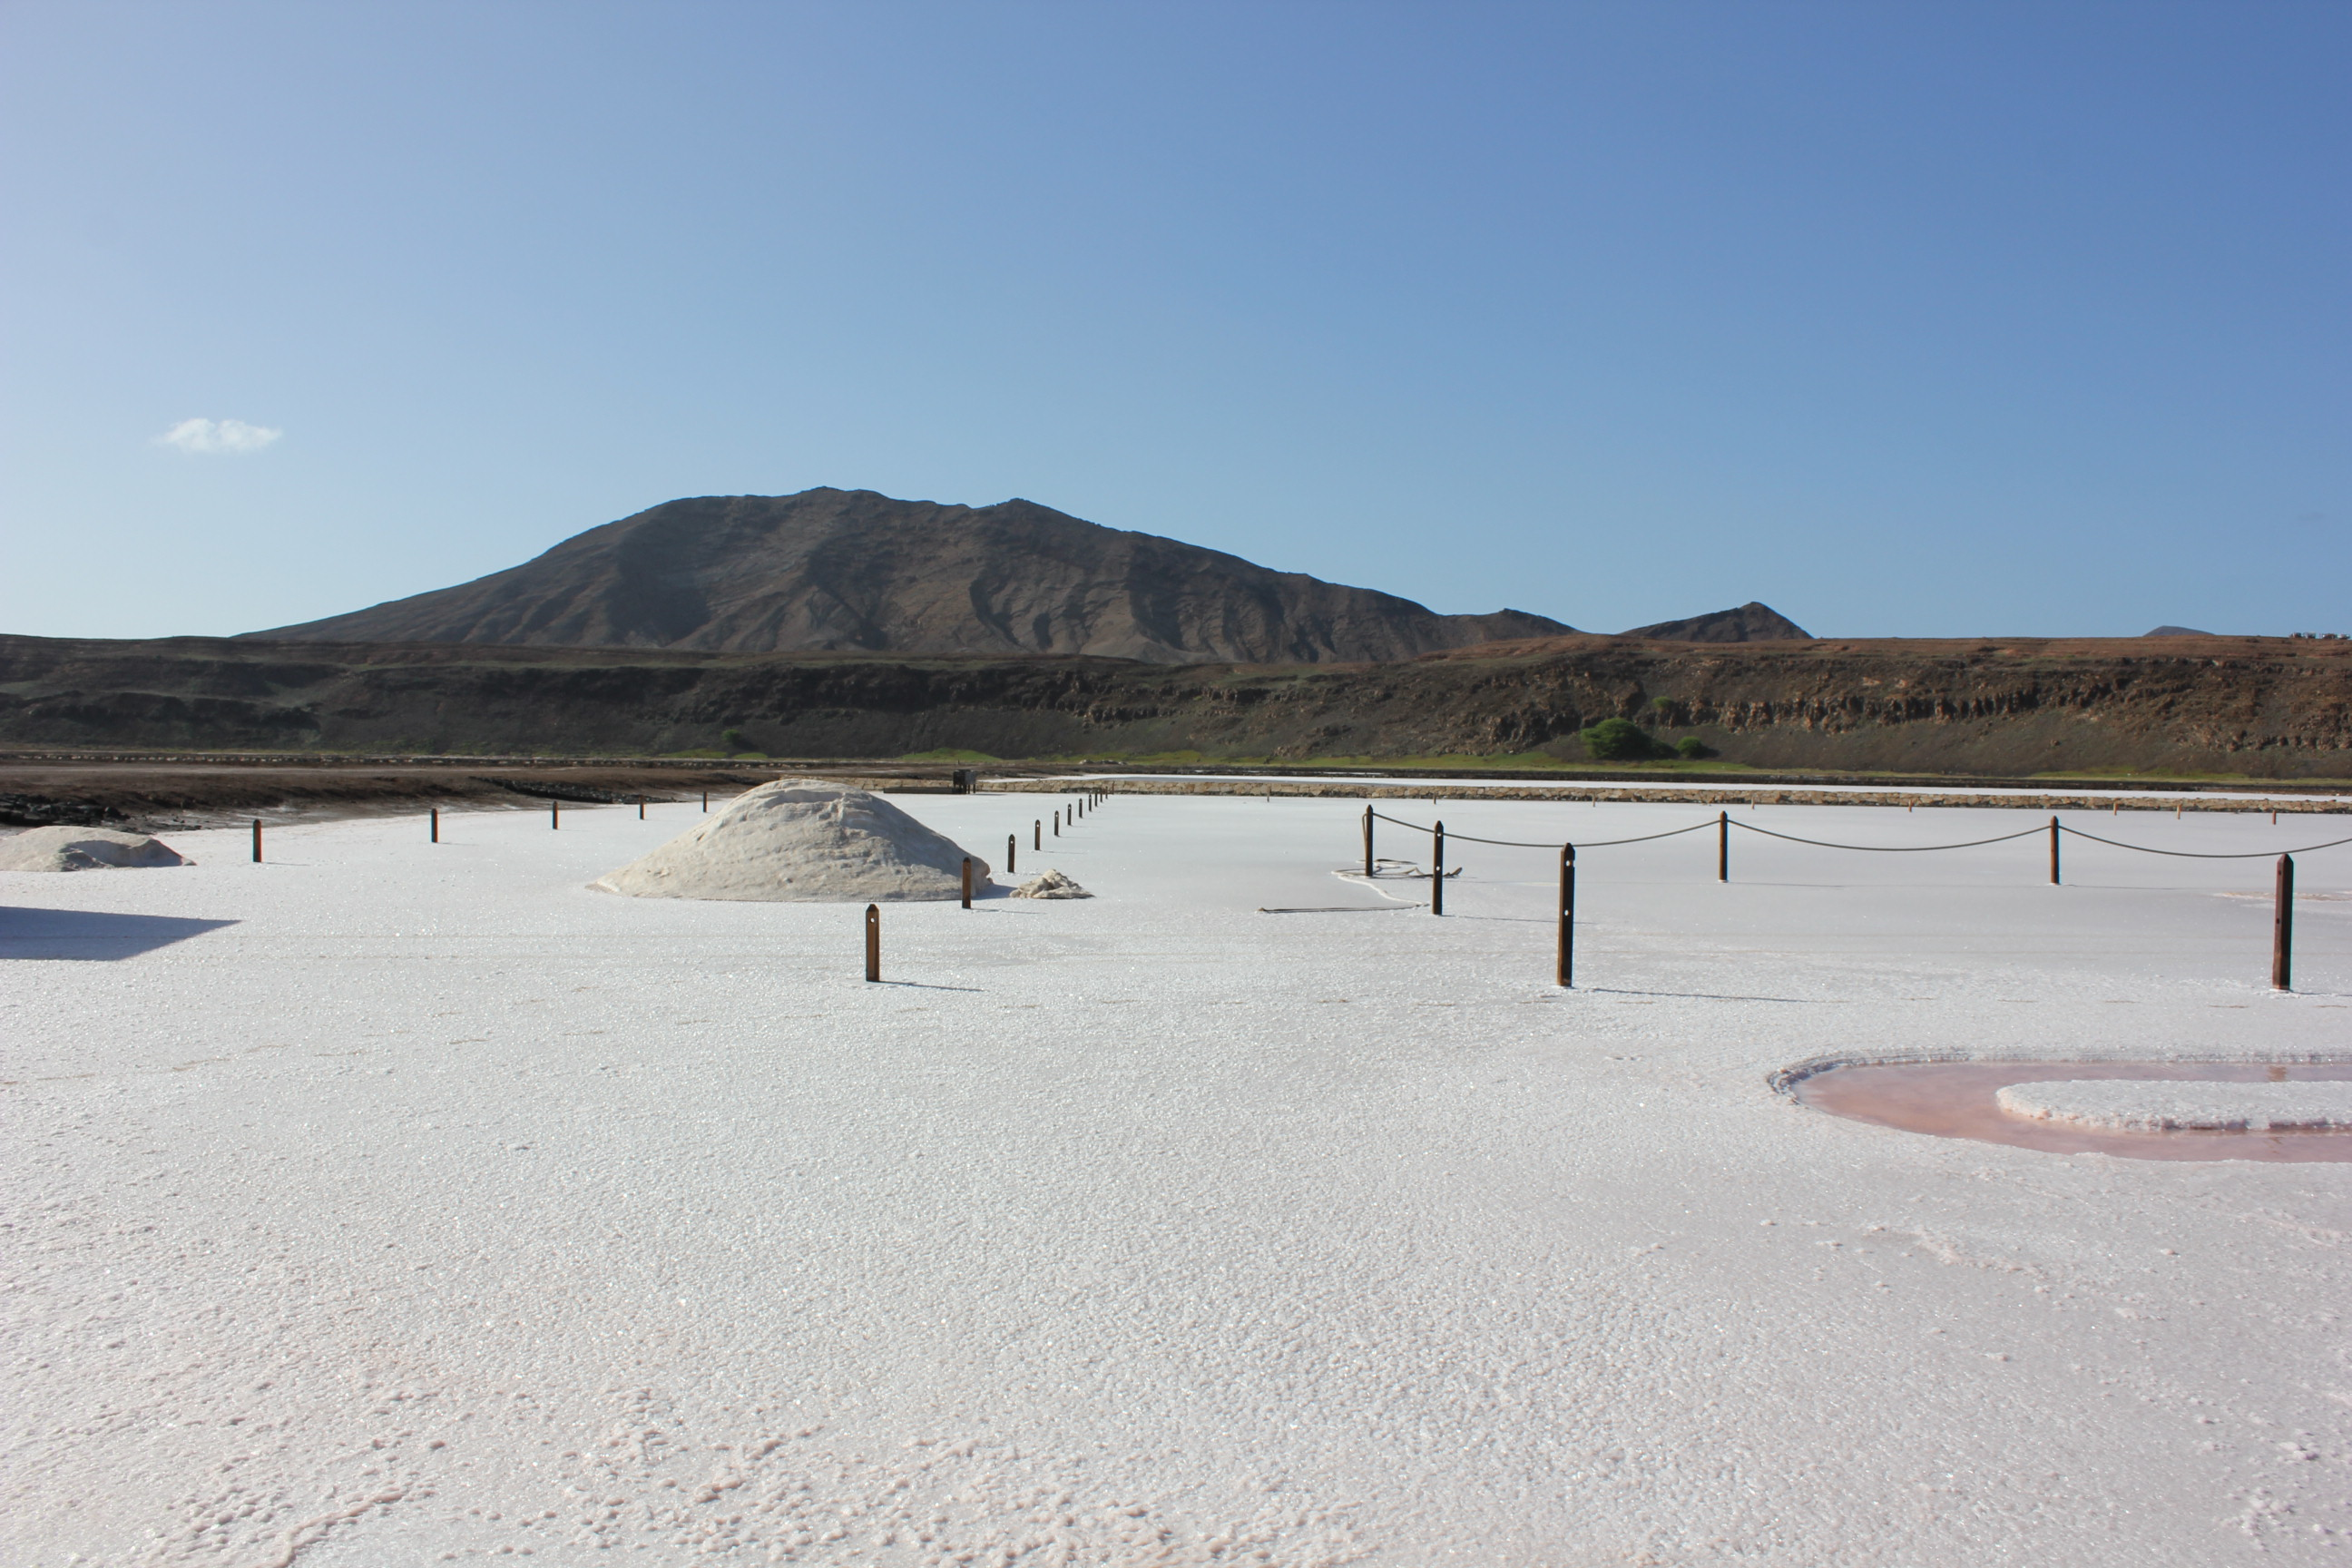 location Salina. this is not snow but salt that dries out on sun, that is why the island is called SAL (salt). the density of salt is around 48%. you can swim in nearby pools